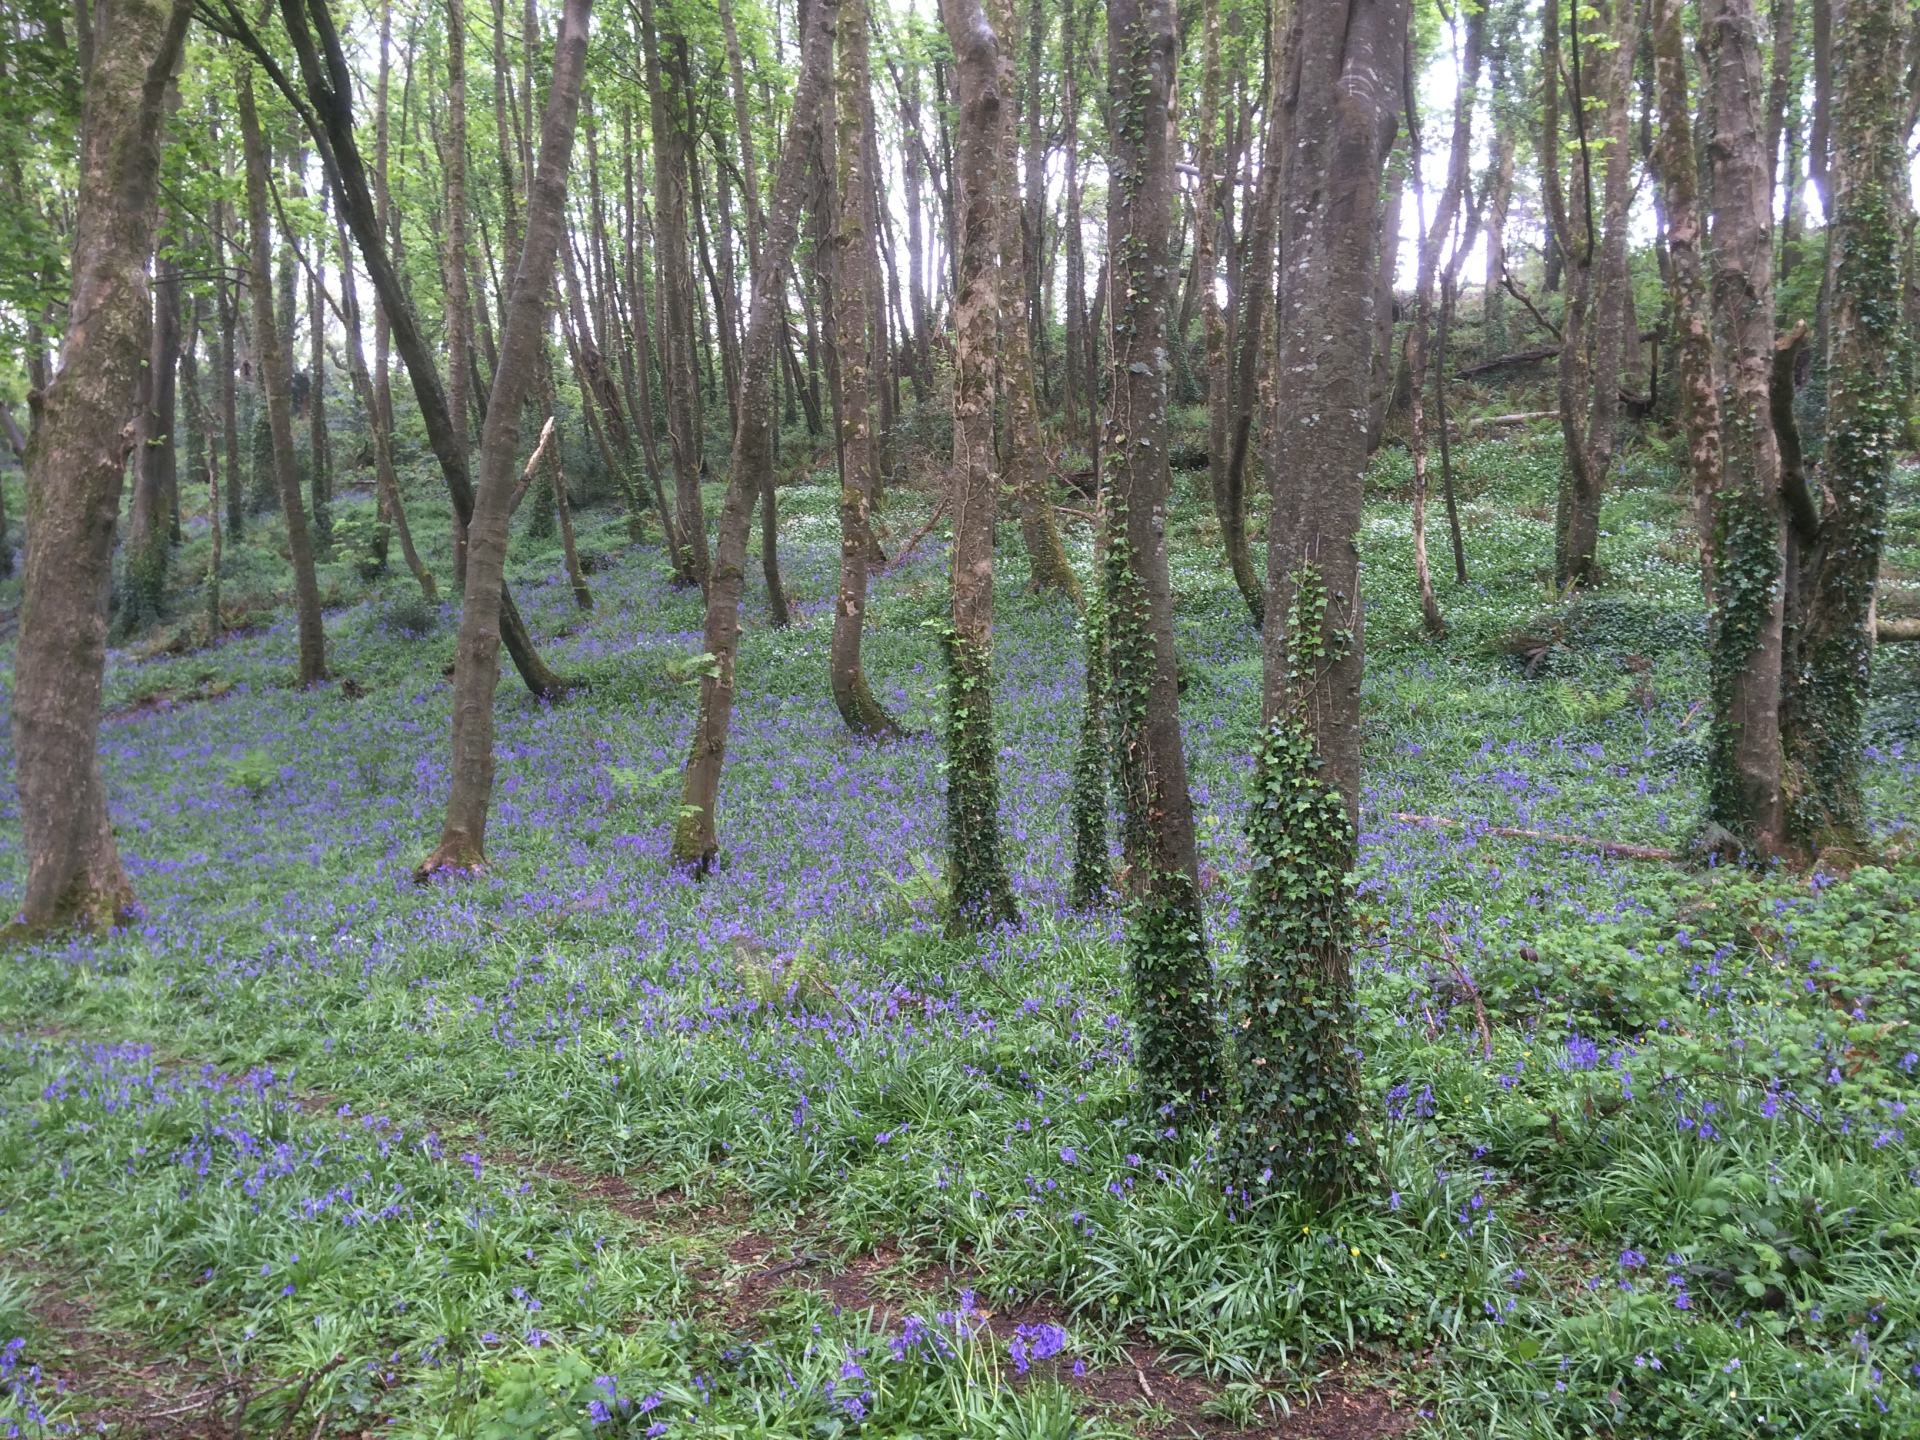 2016-05-08 Bluebell Walk